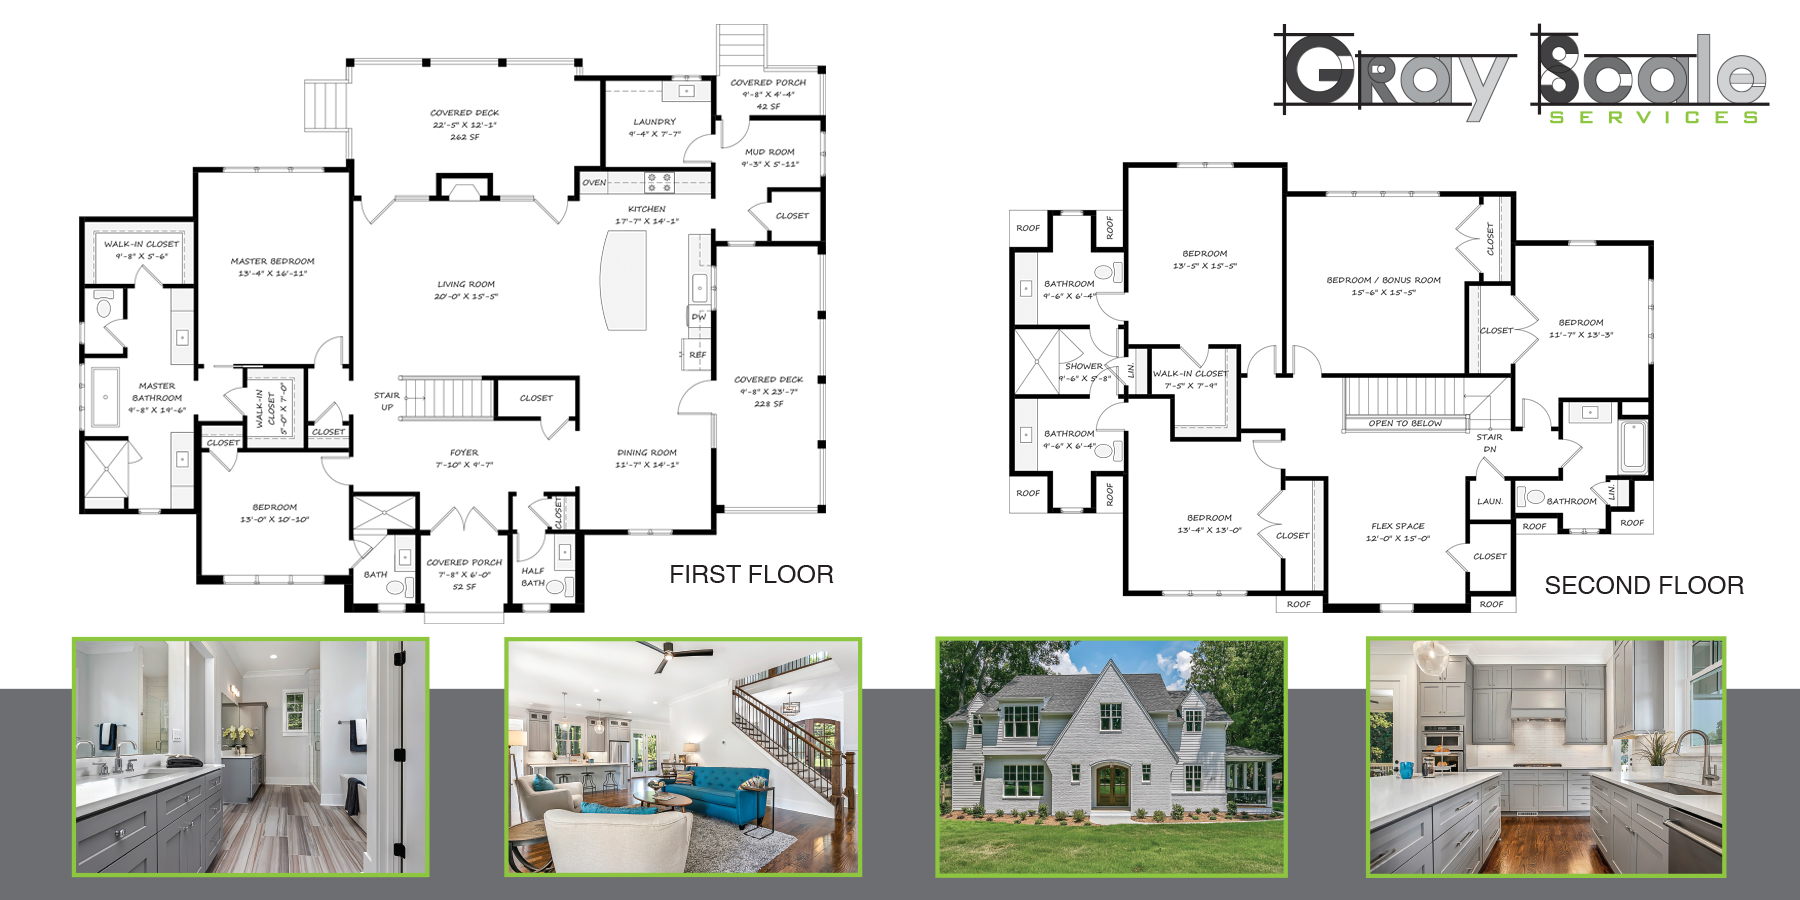 Gray Scale Services Professional Measuring Services and Floorplan Banner